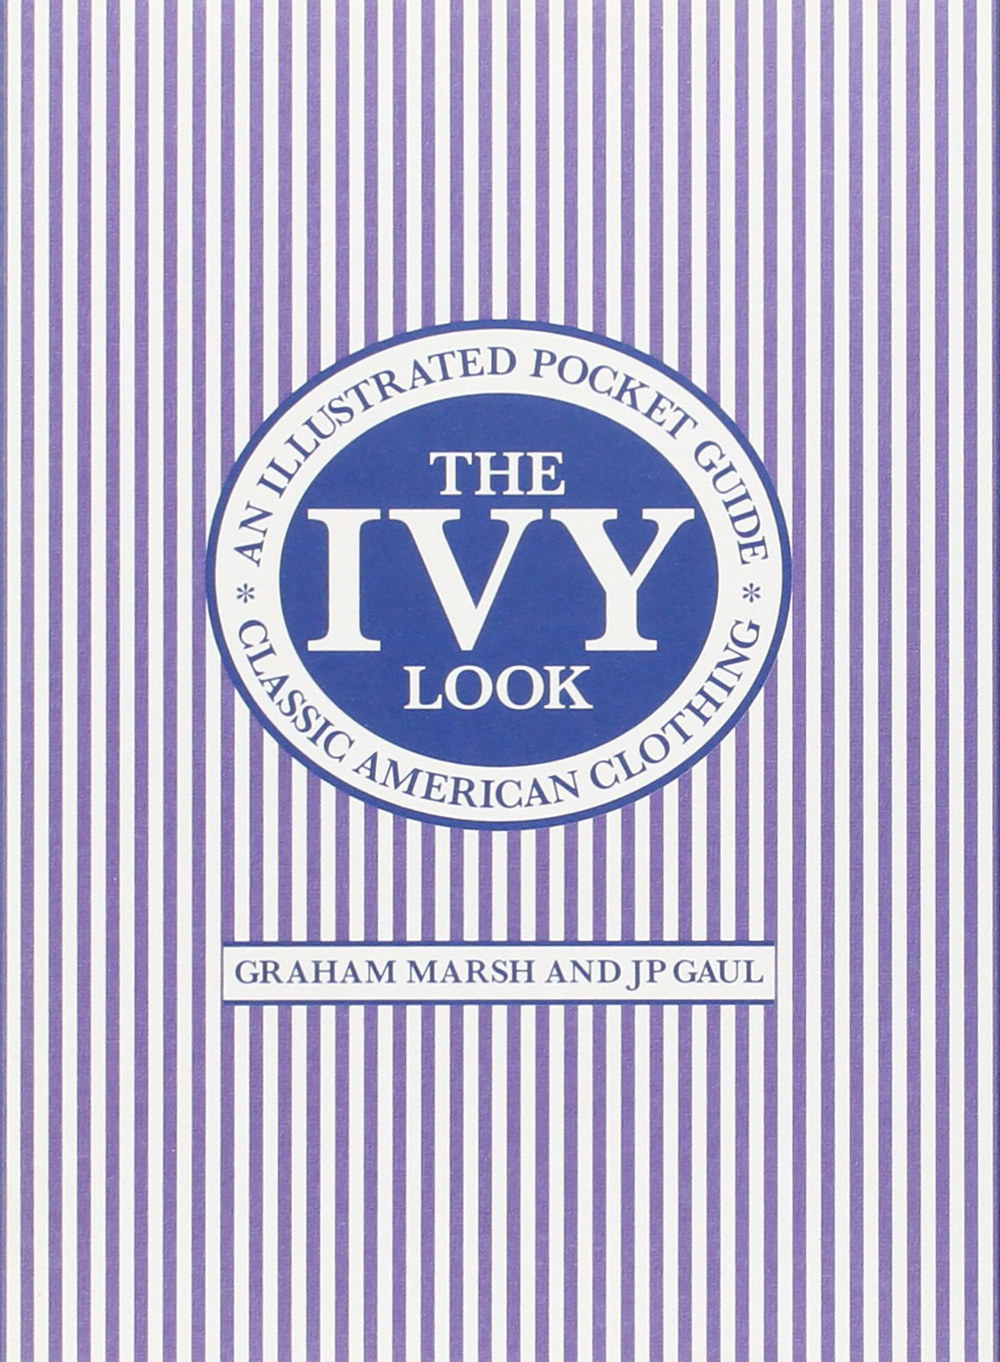 theivylook.jpg